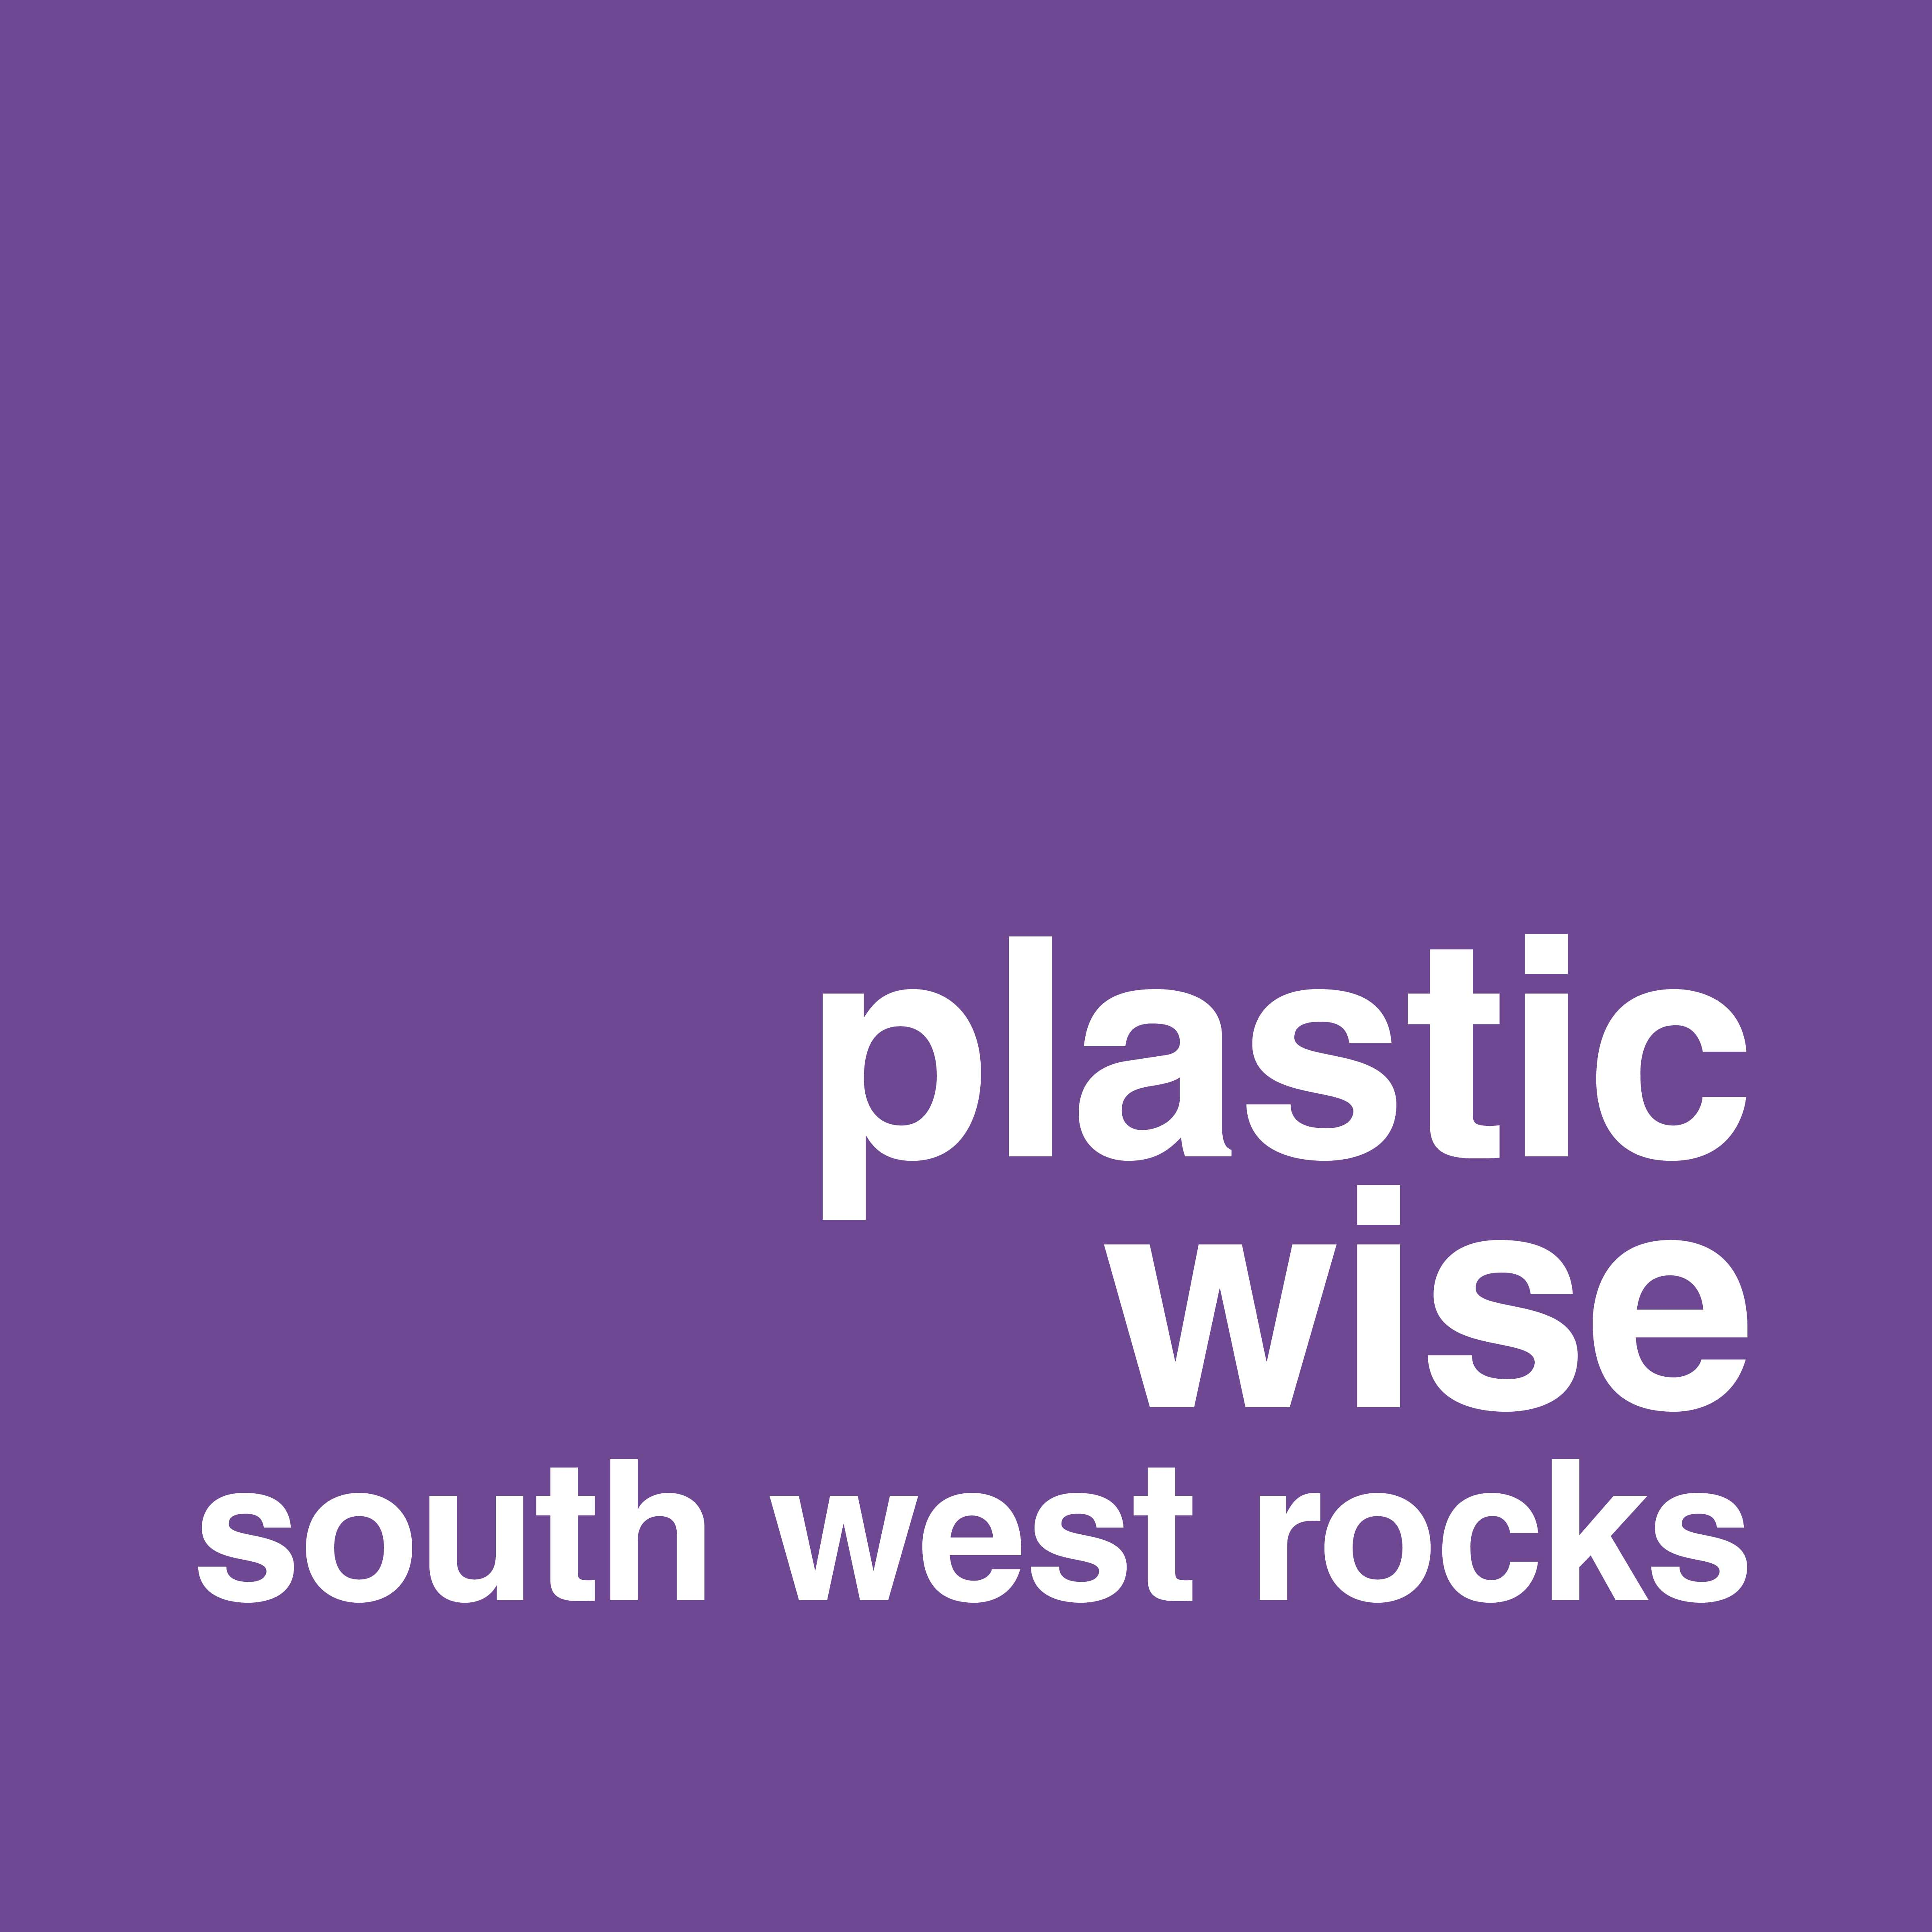 plastic wise south west rocks Poster